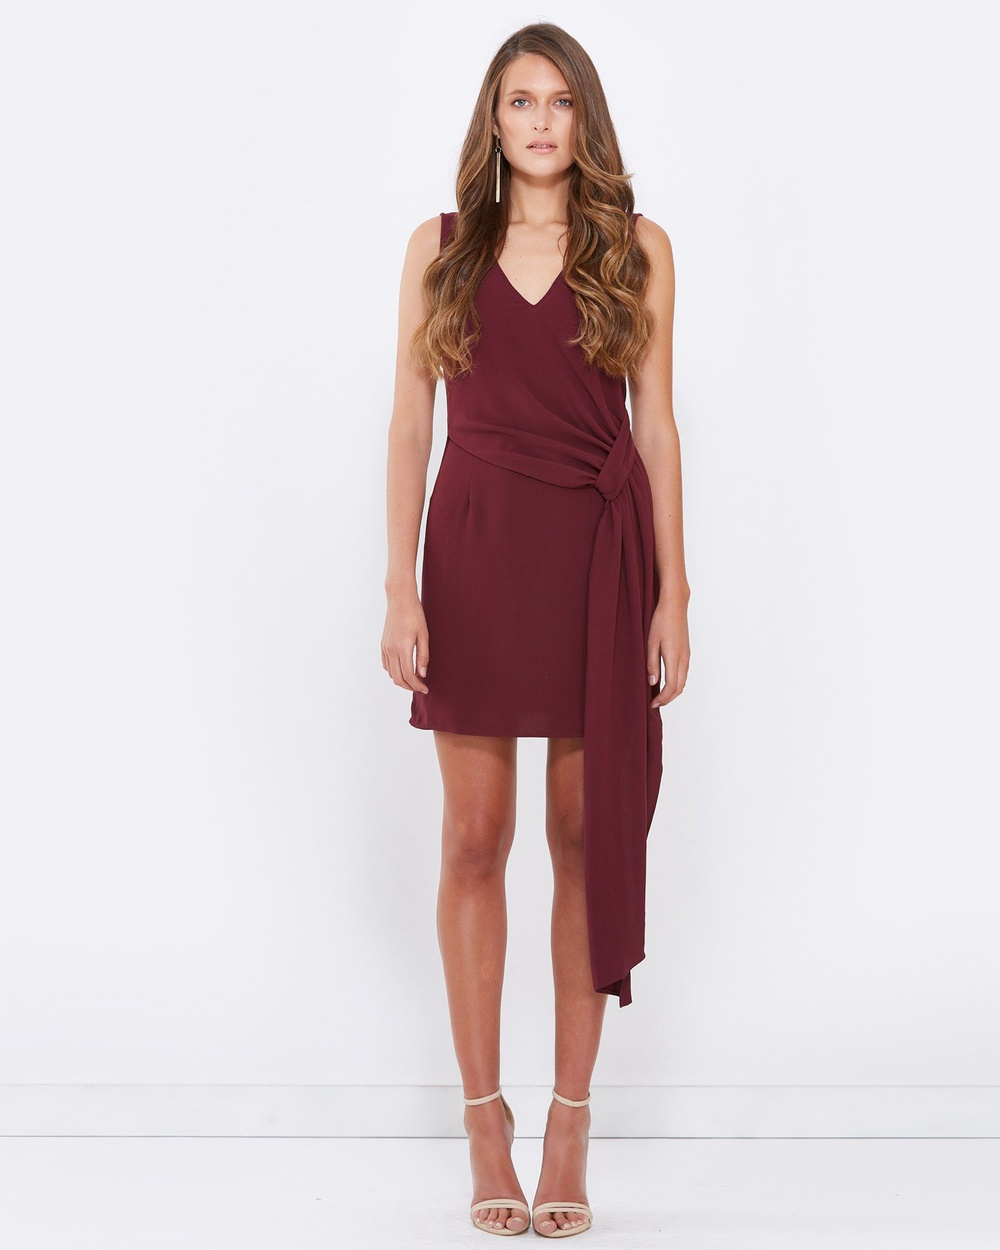 Tussah Victoria Draped Mini Dress Dresses Plum Victoria Draped Mini Dress